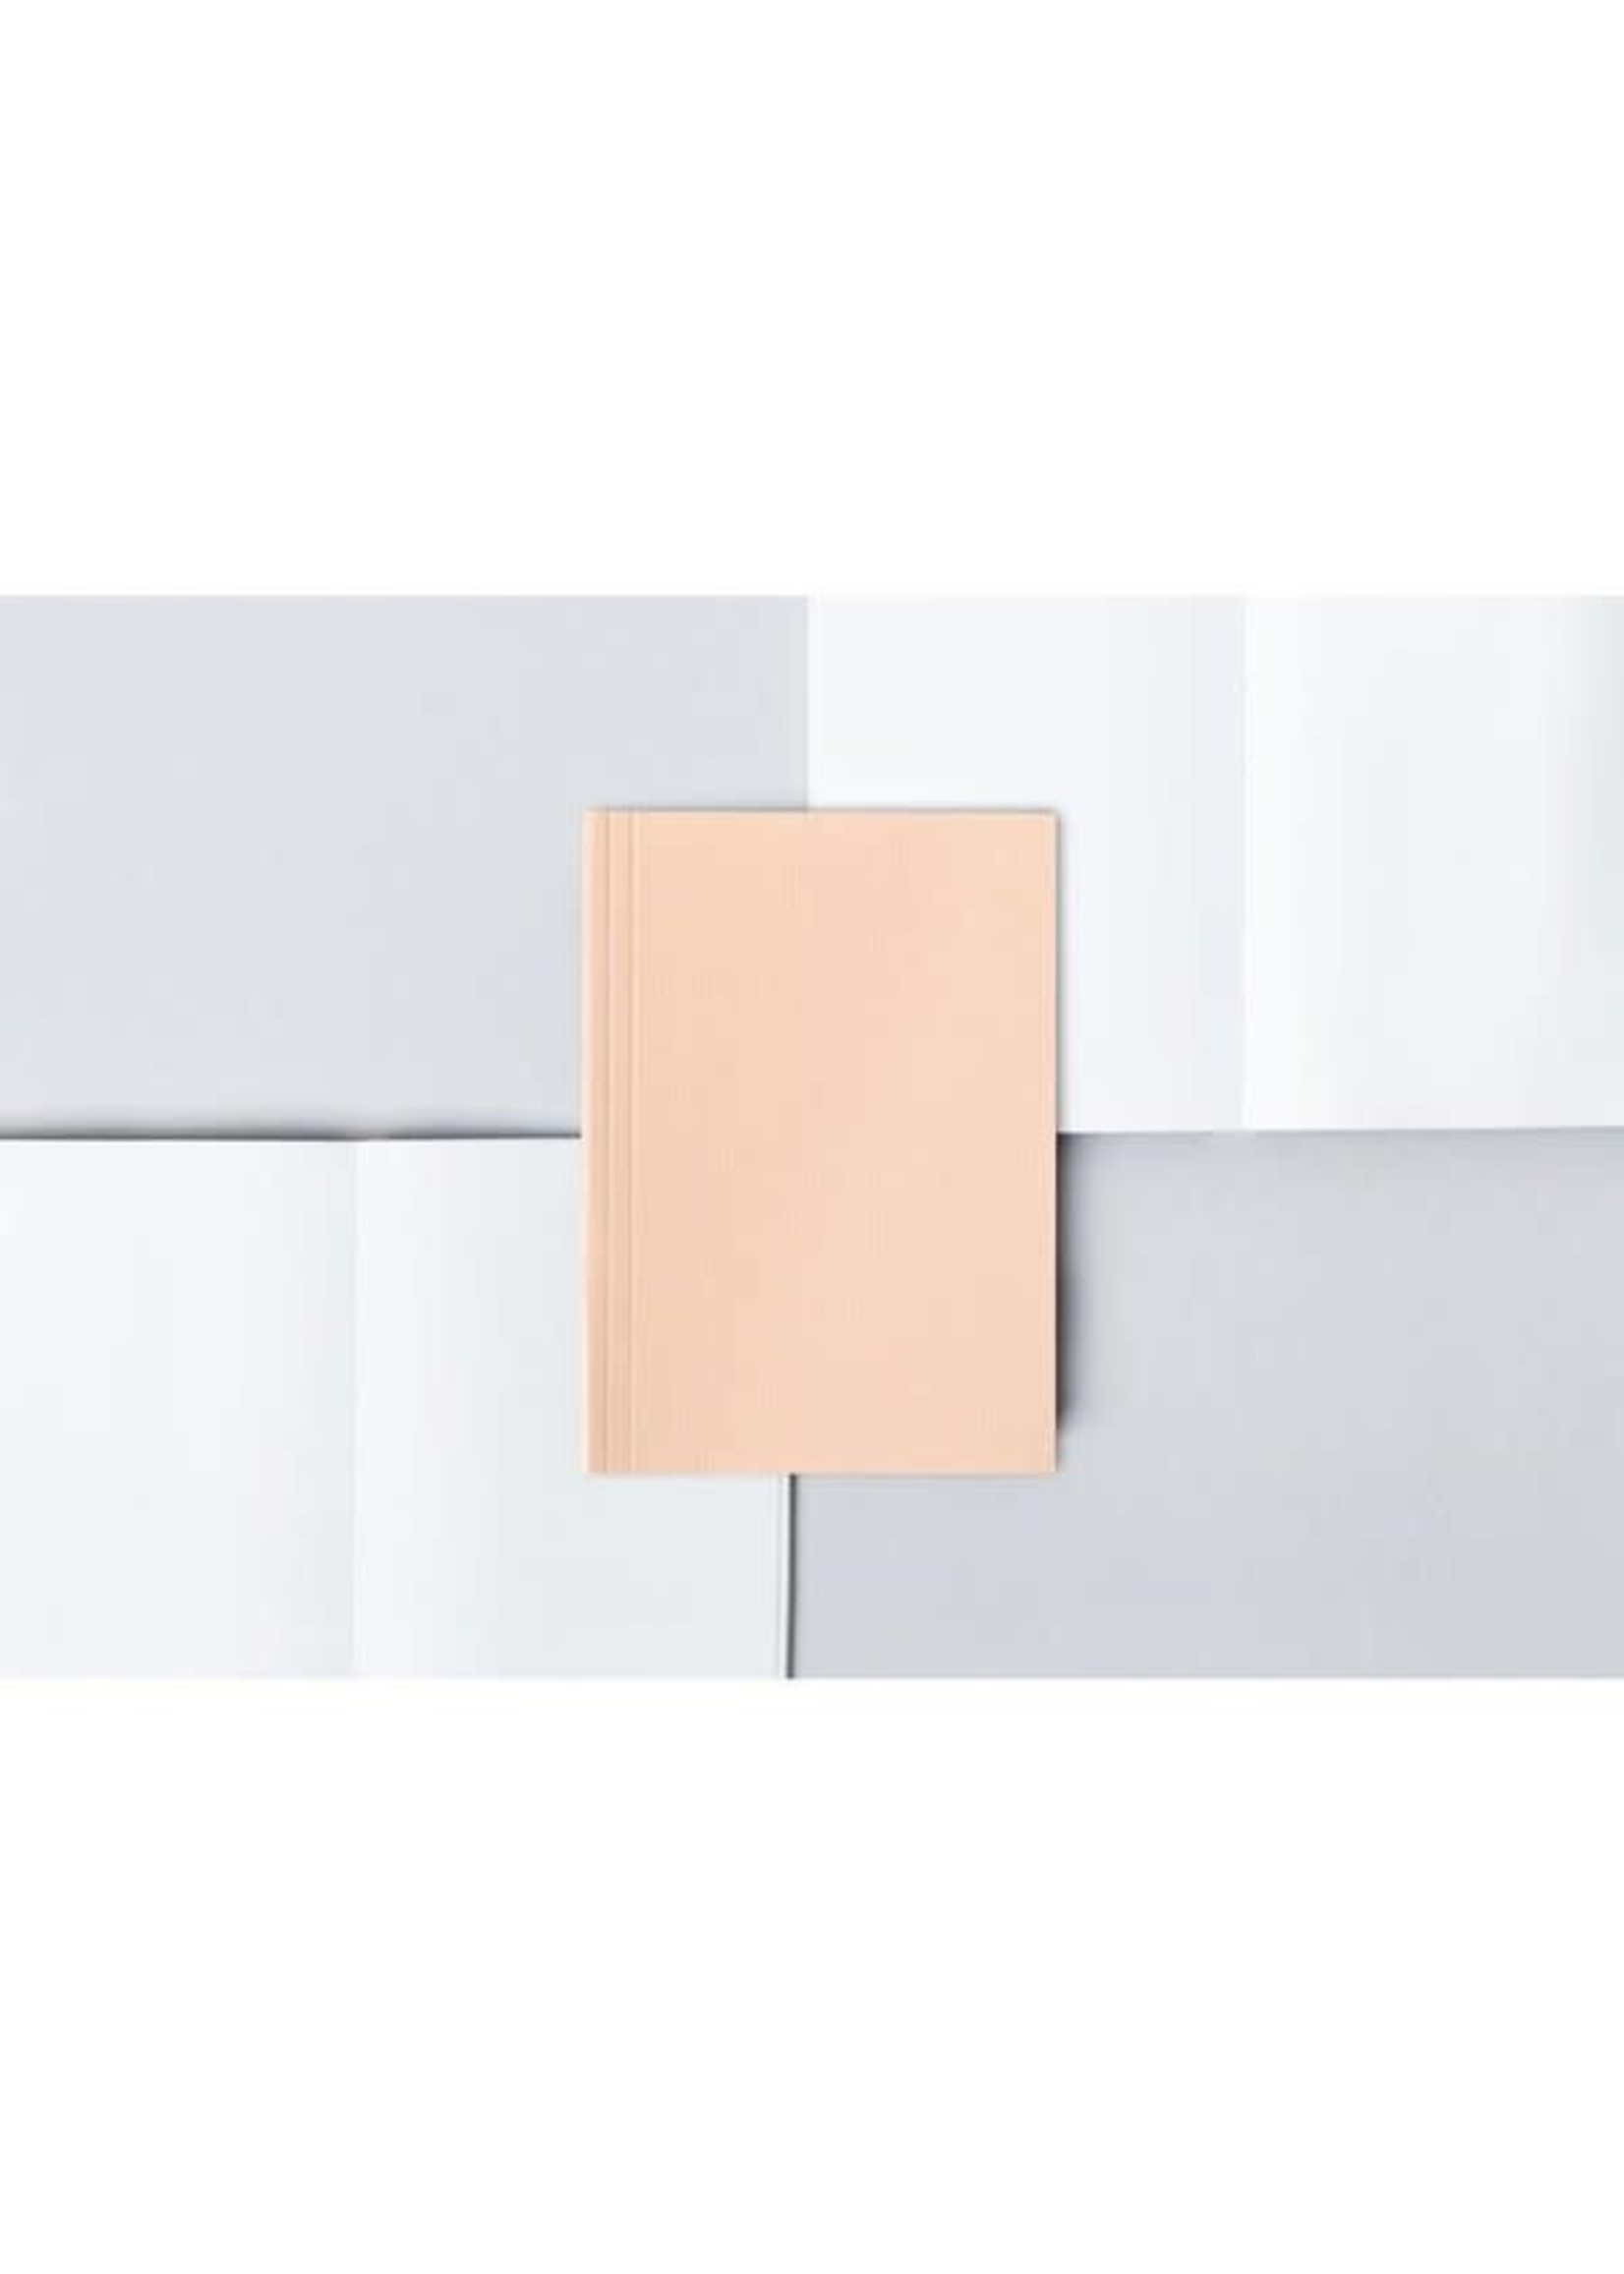 Ola Ola Pocket Layflat Notebook: Everyday Objects Edition 2: Circle Pink/Plain Pages